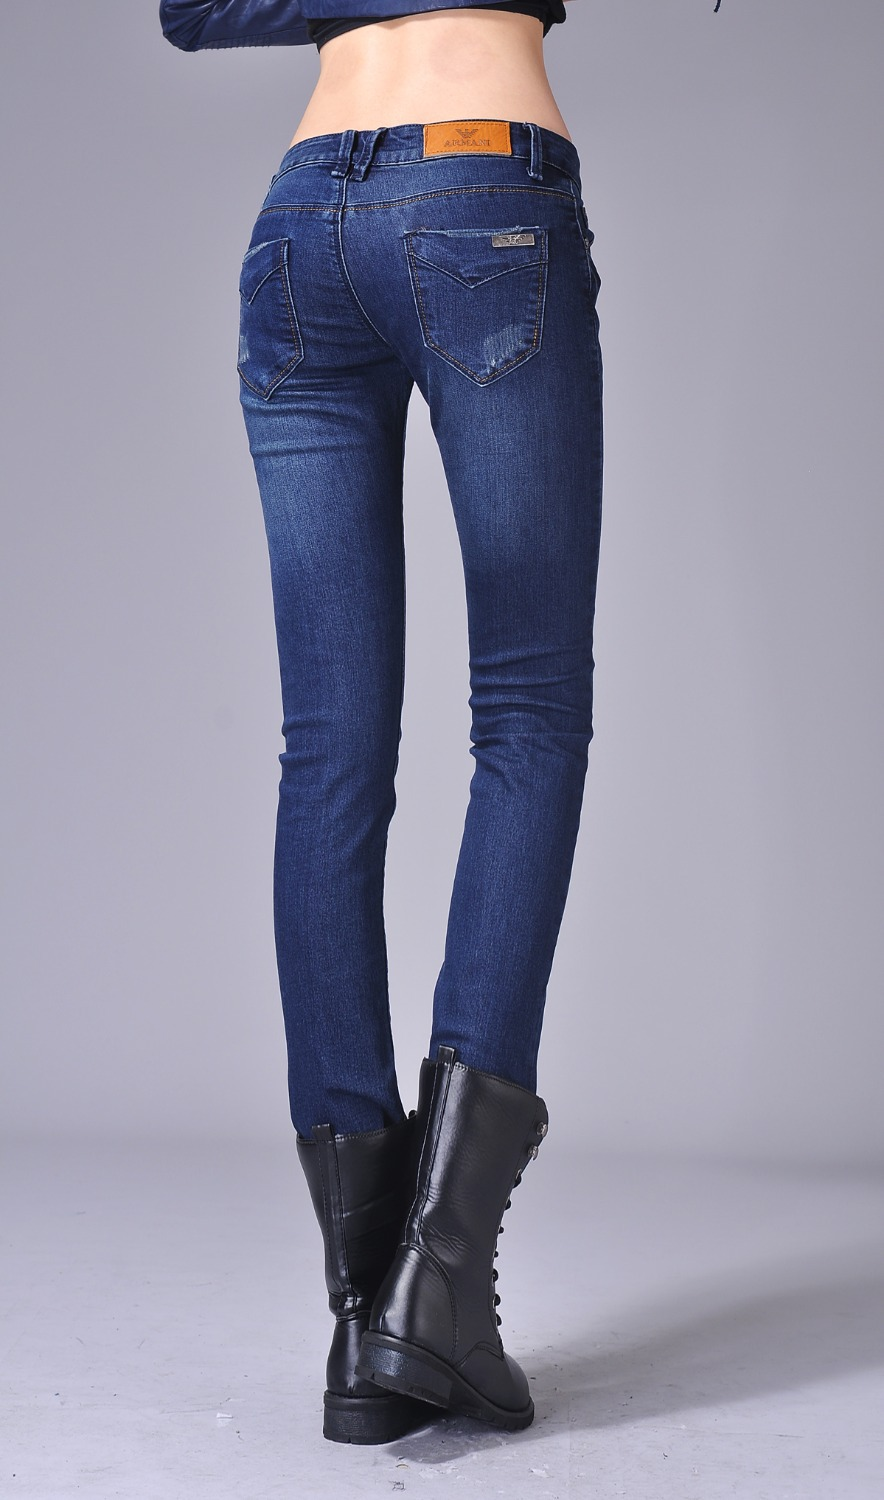 The-2015-women-s-jeans-Italy-mani-nice-jeans-tight-jeans-brand-stretch-jeans-for-woman.jpg